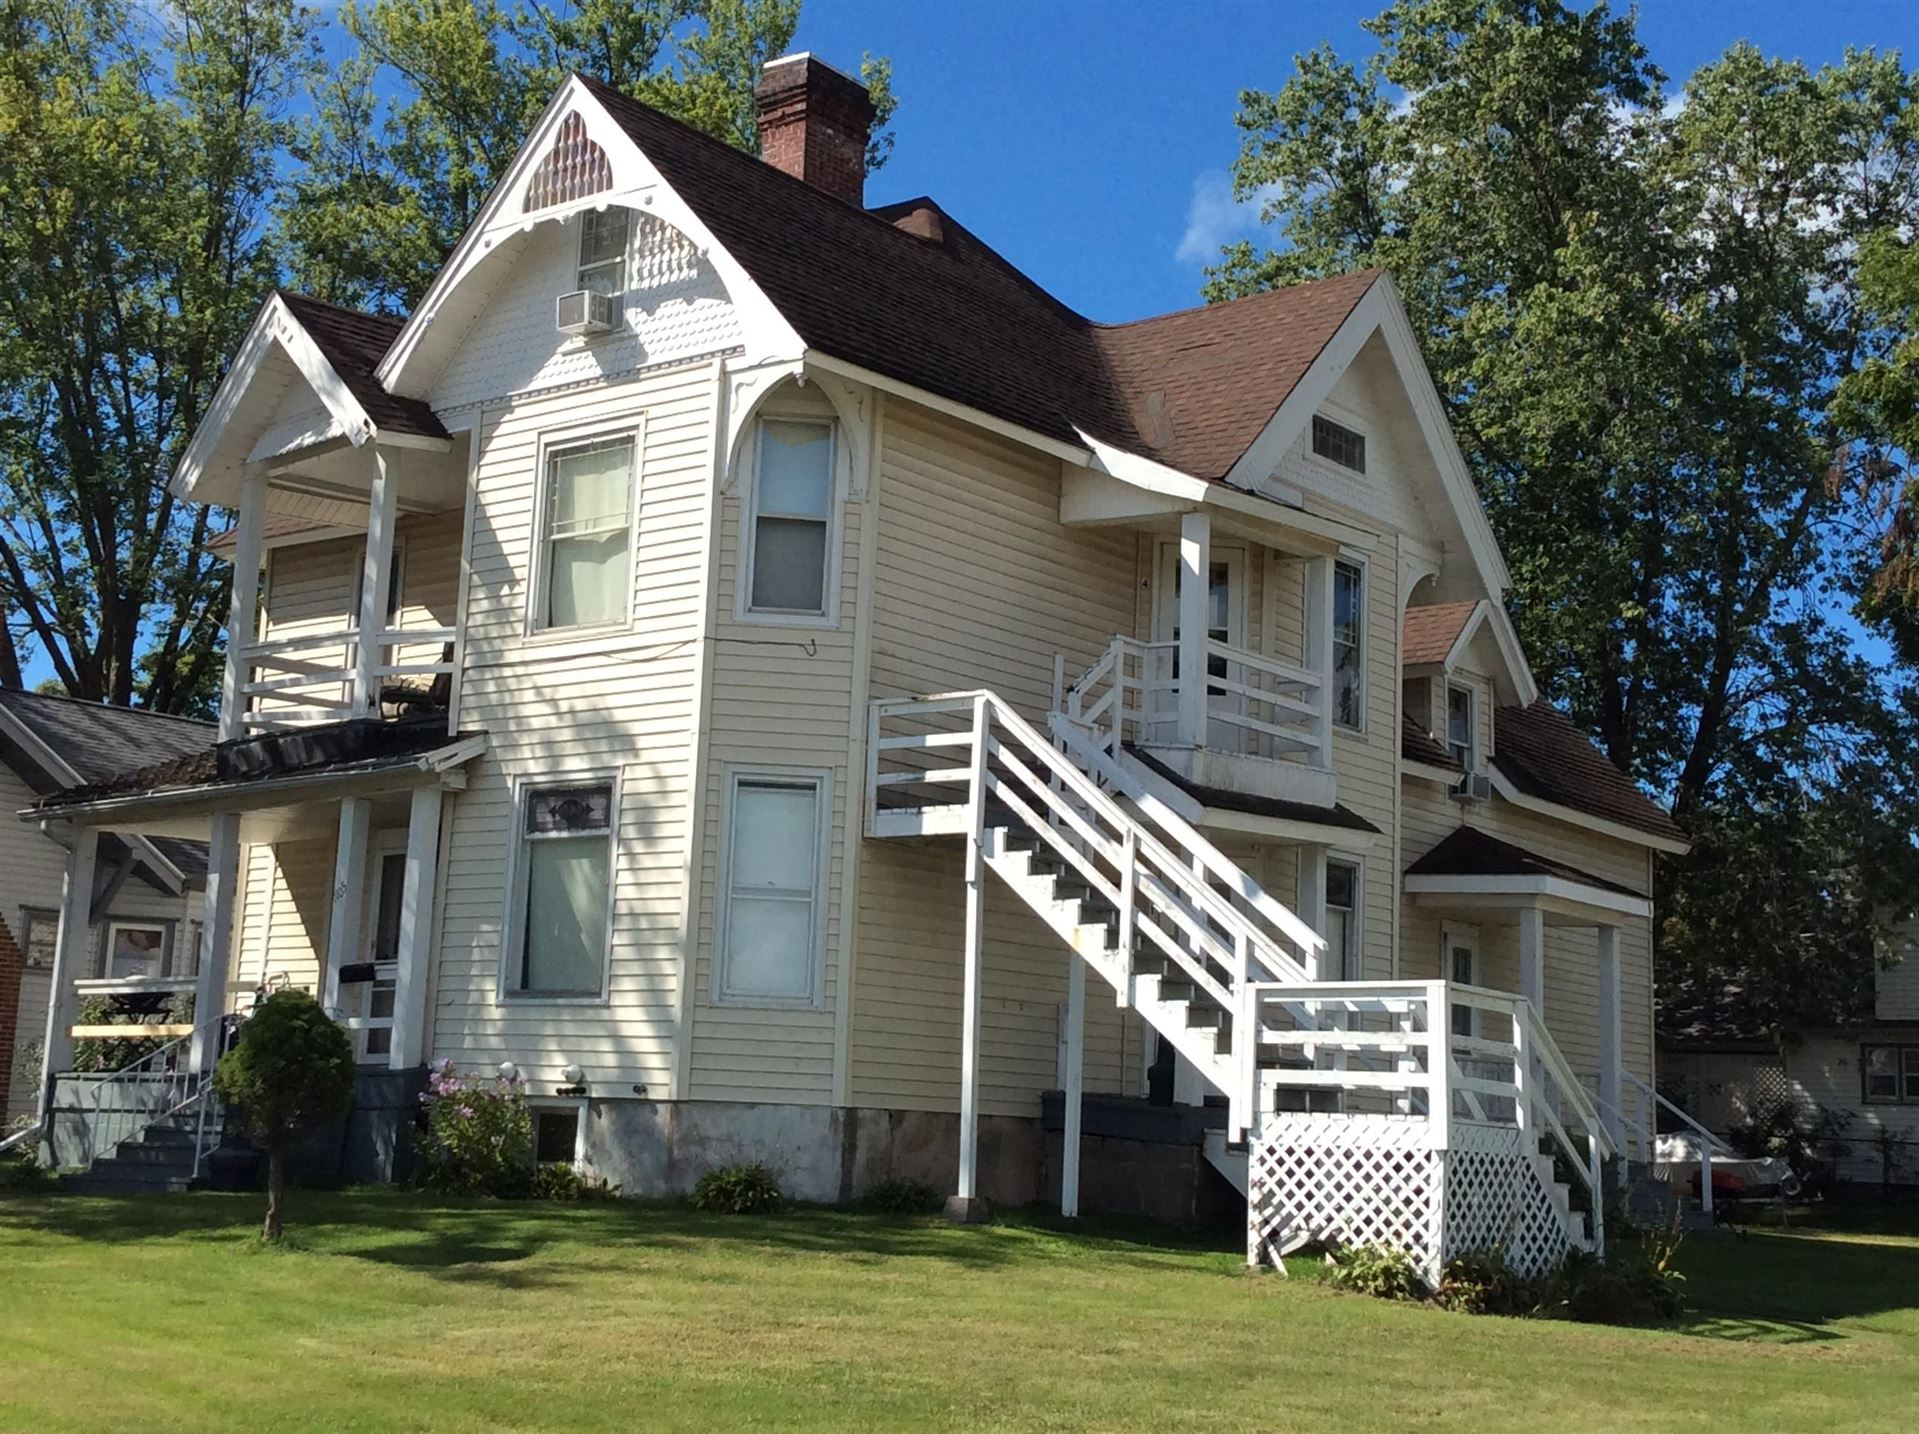 1105 McLean Ave, Tomah, WI 54660 - #: 1919382